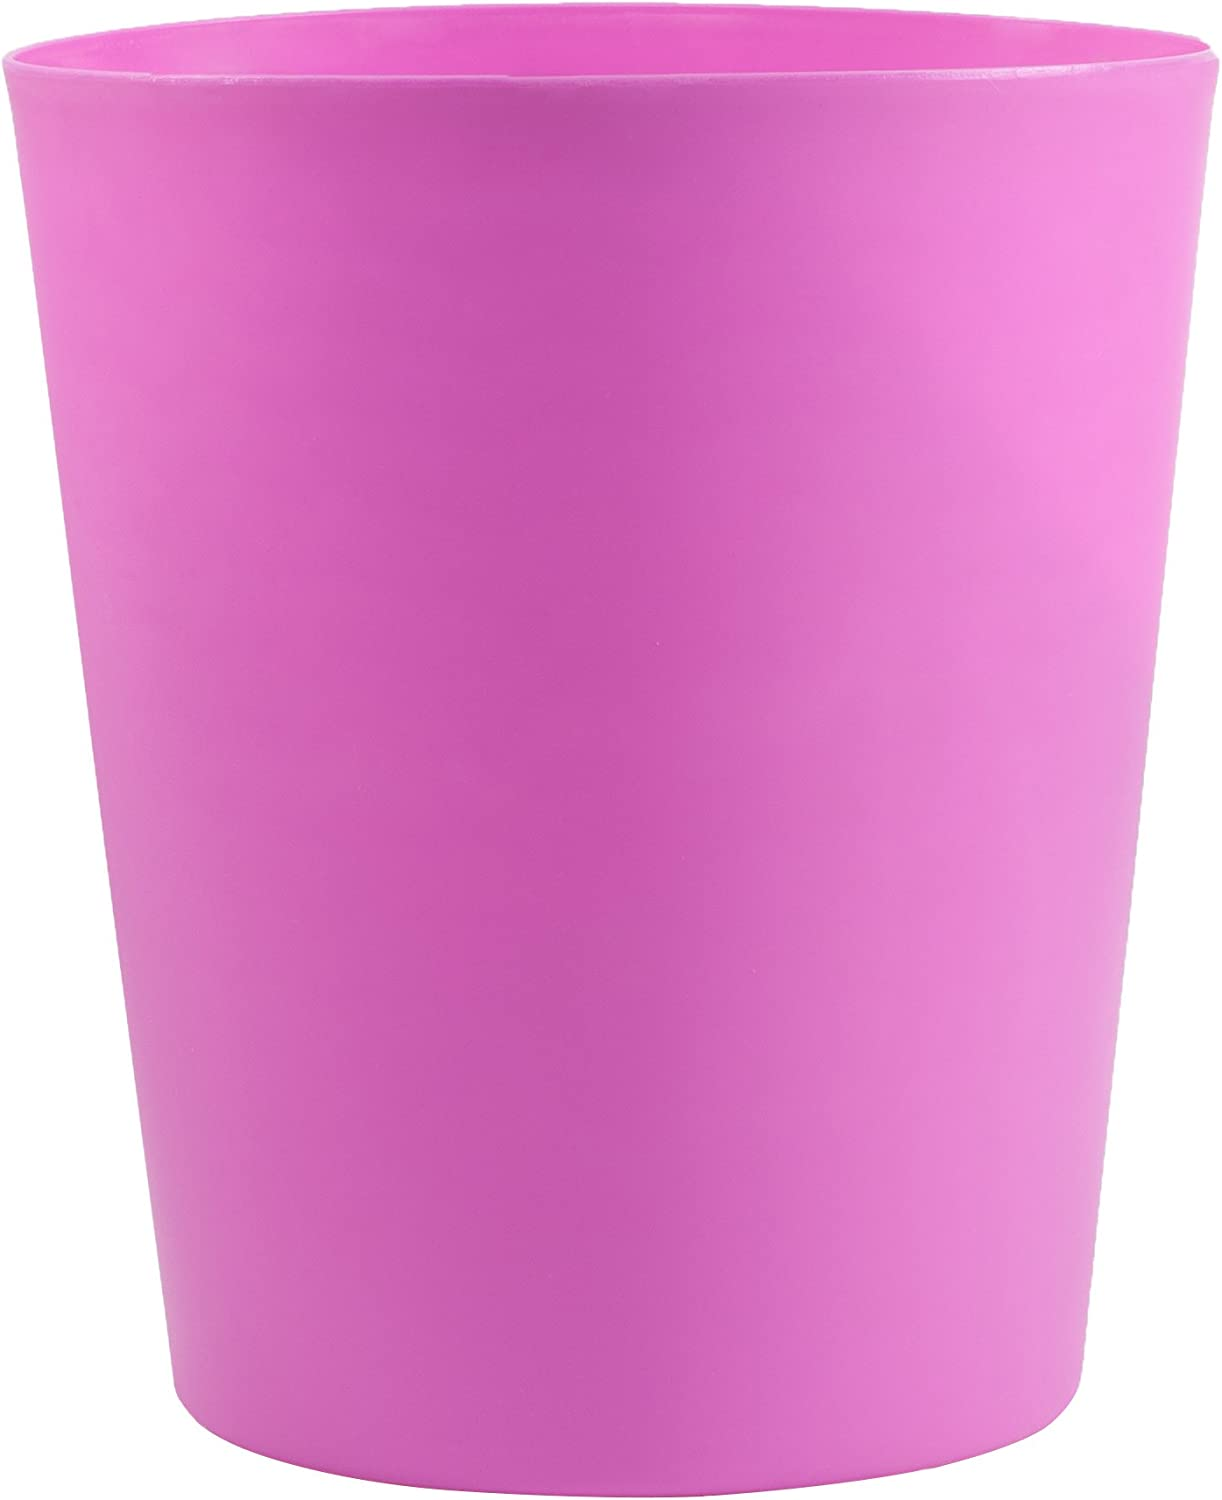 Everyday Home Trash Can-Pink